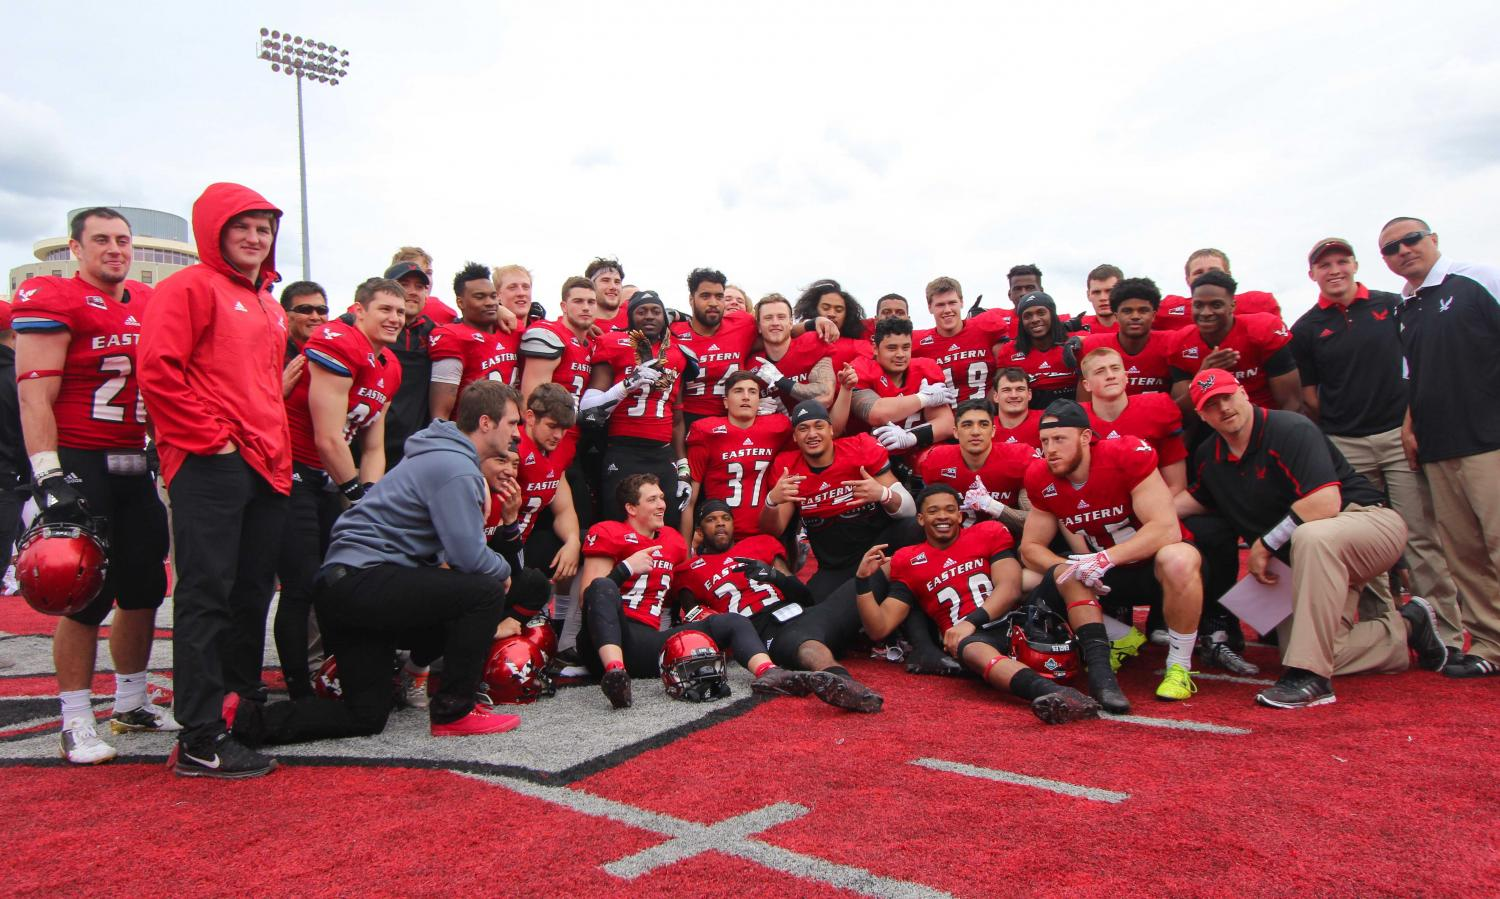 Players on Team Red pose for a picture after their win in the annual Red-White Spring Game